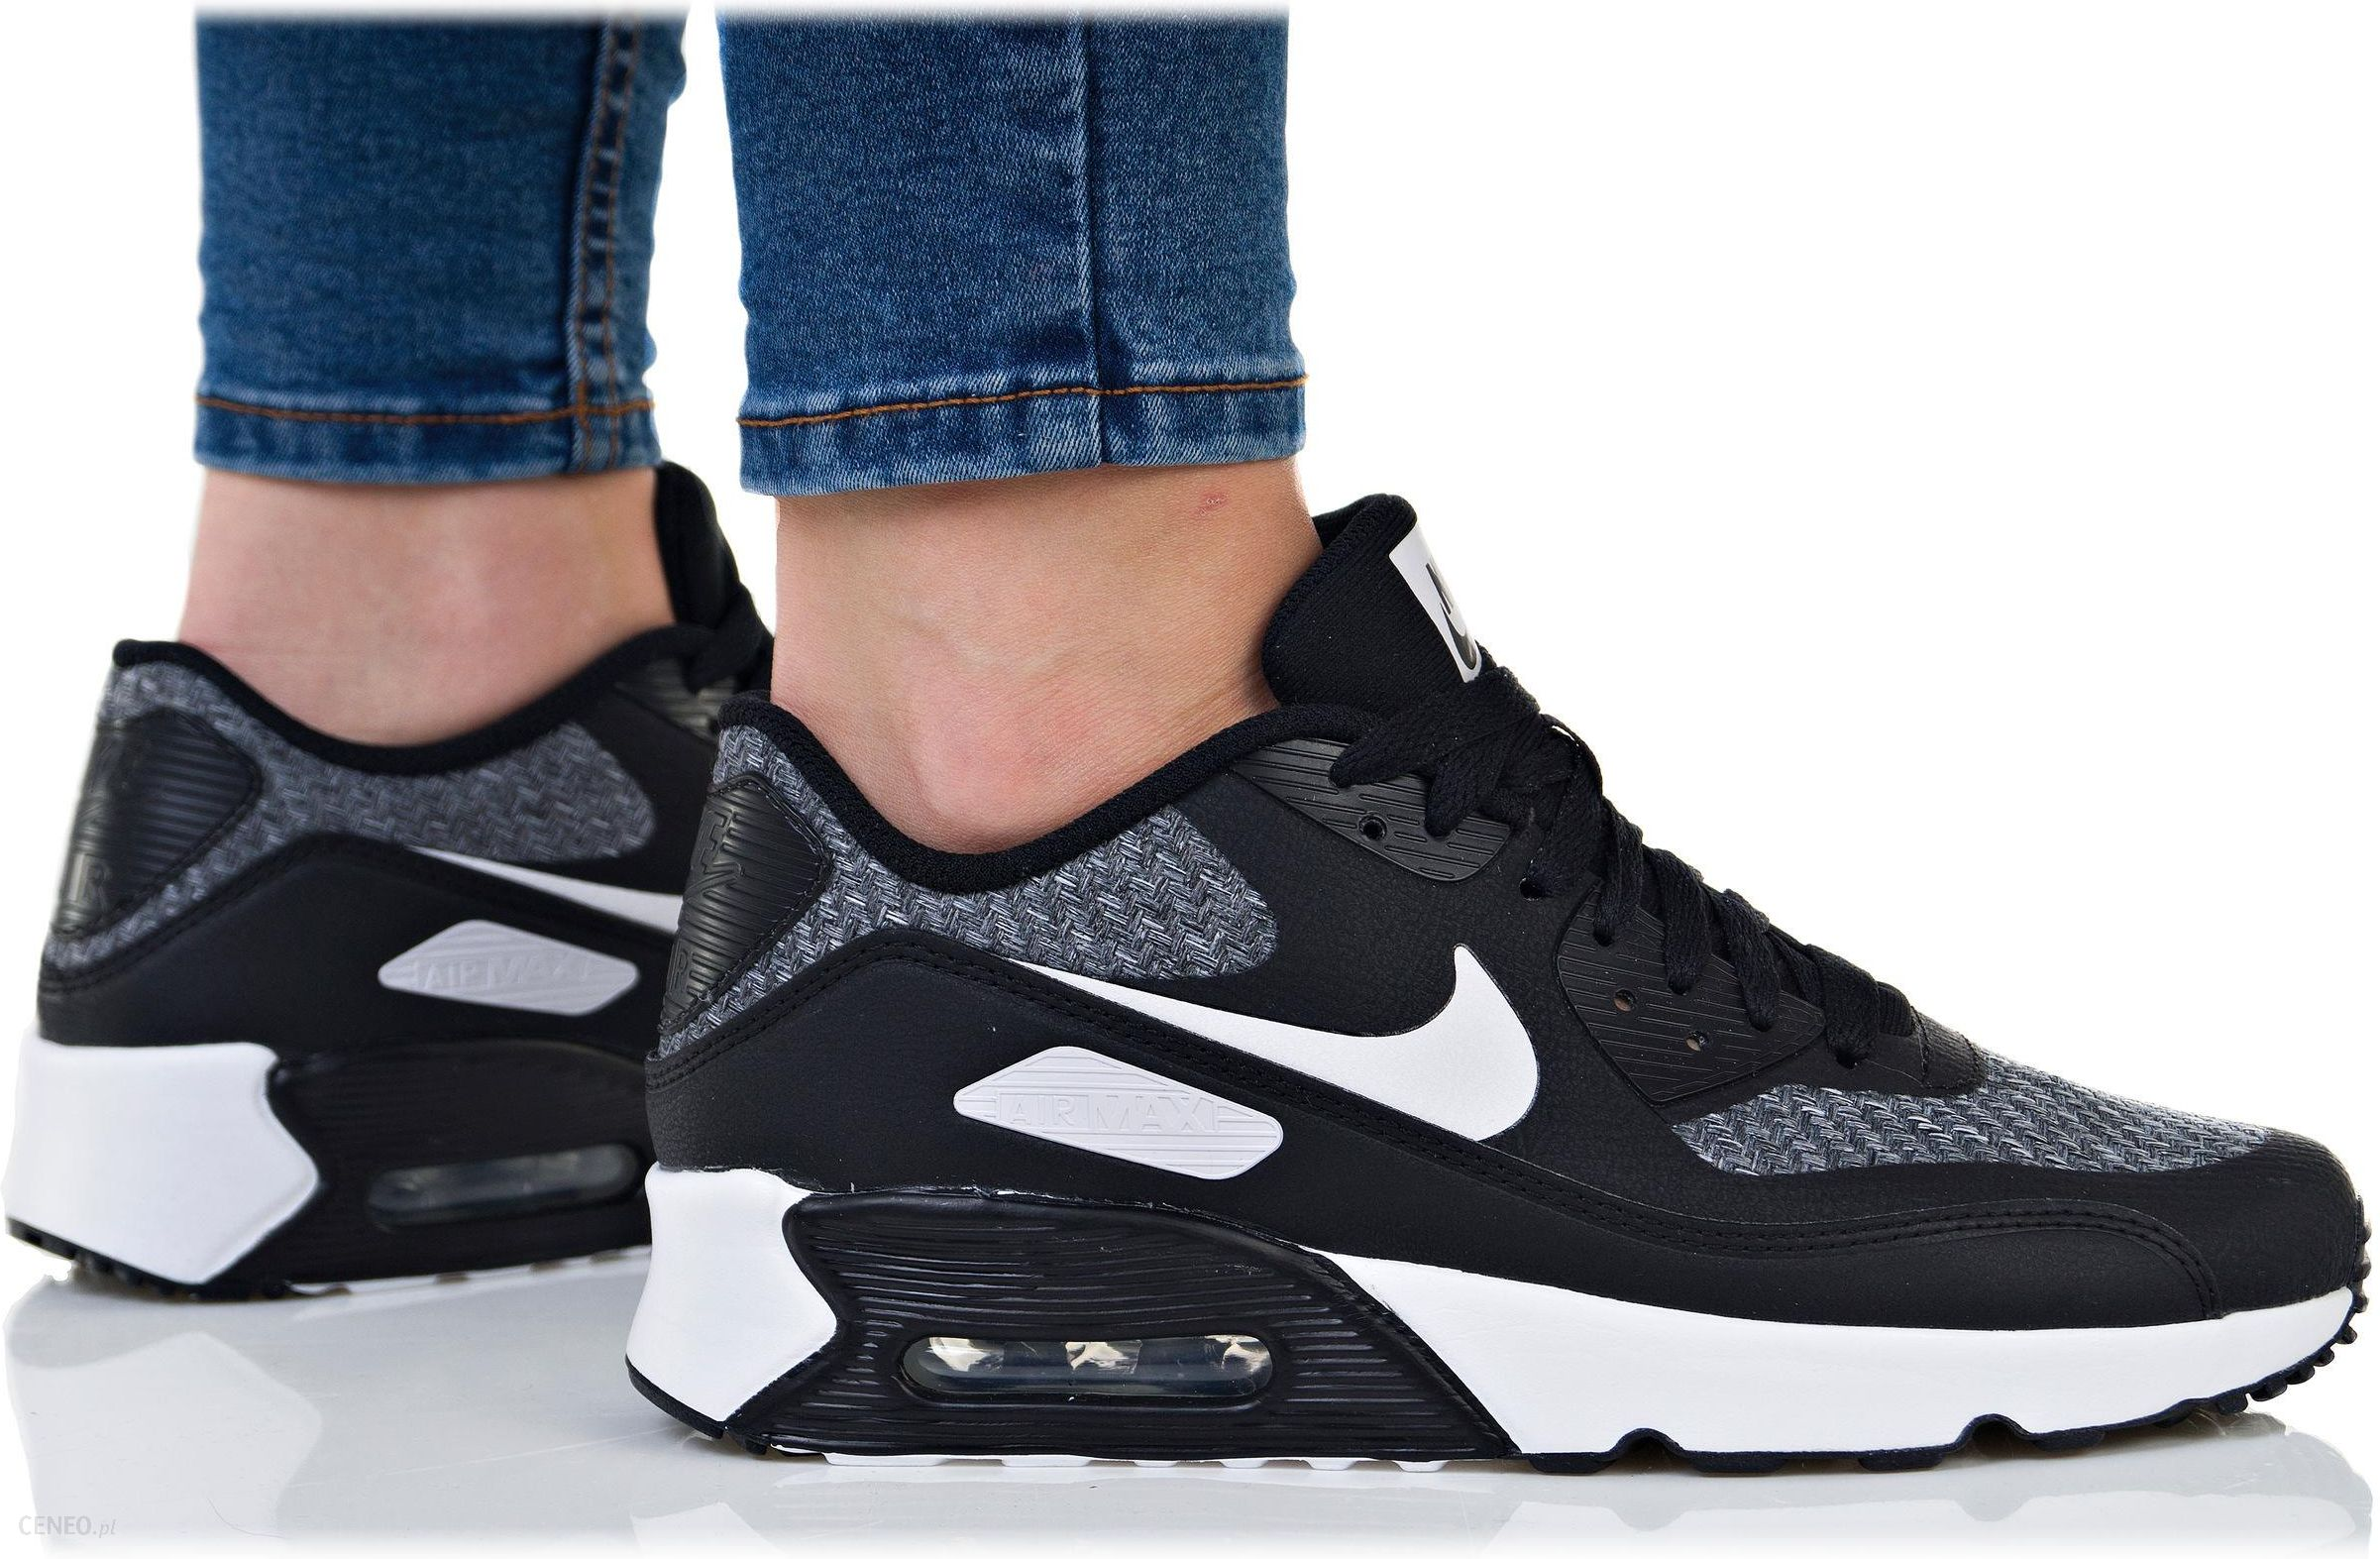 save off 35ff3 7d02f Buty Nike Damskie Air Max 90 Ultra 2.0 917988-007 - Ceny i opinie ...